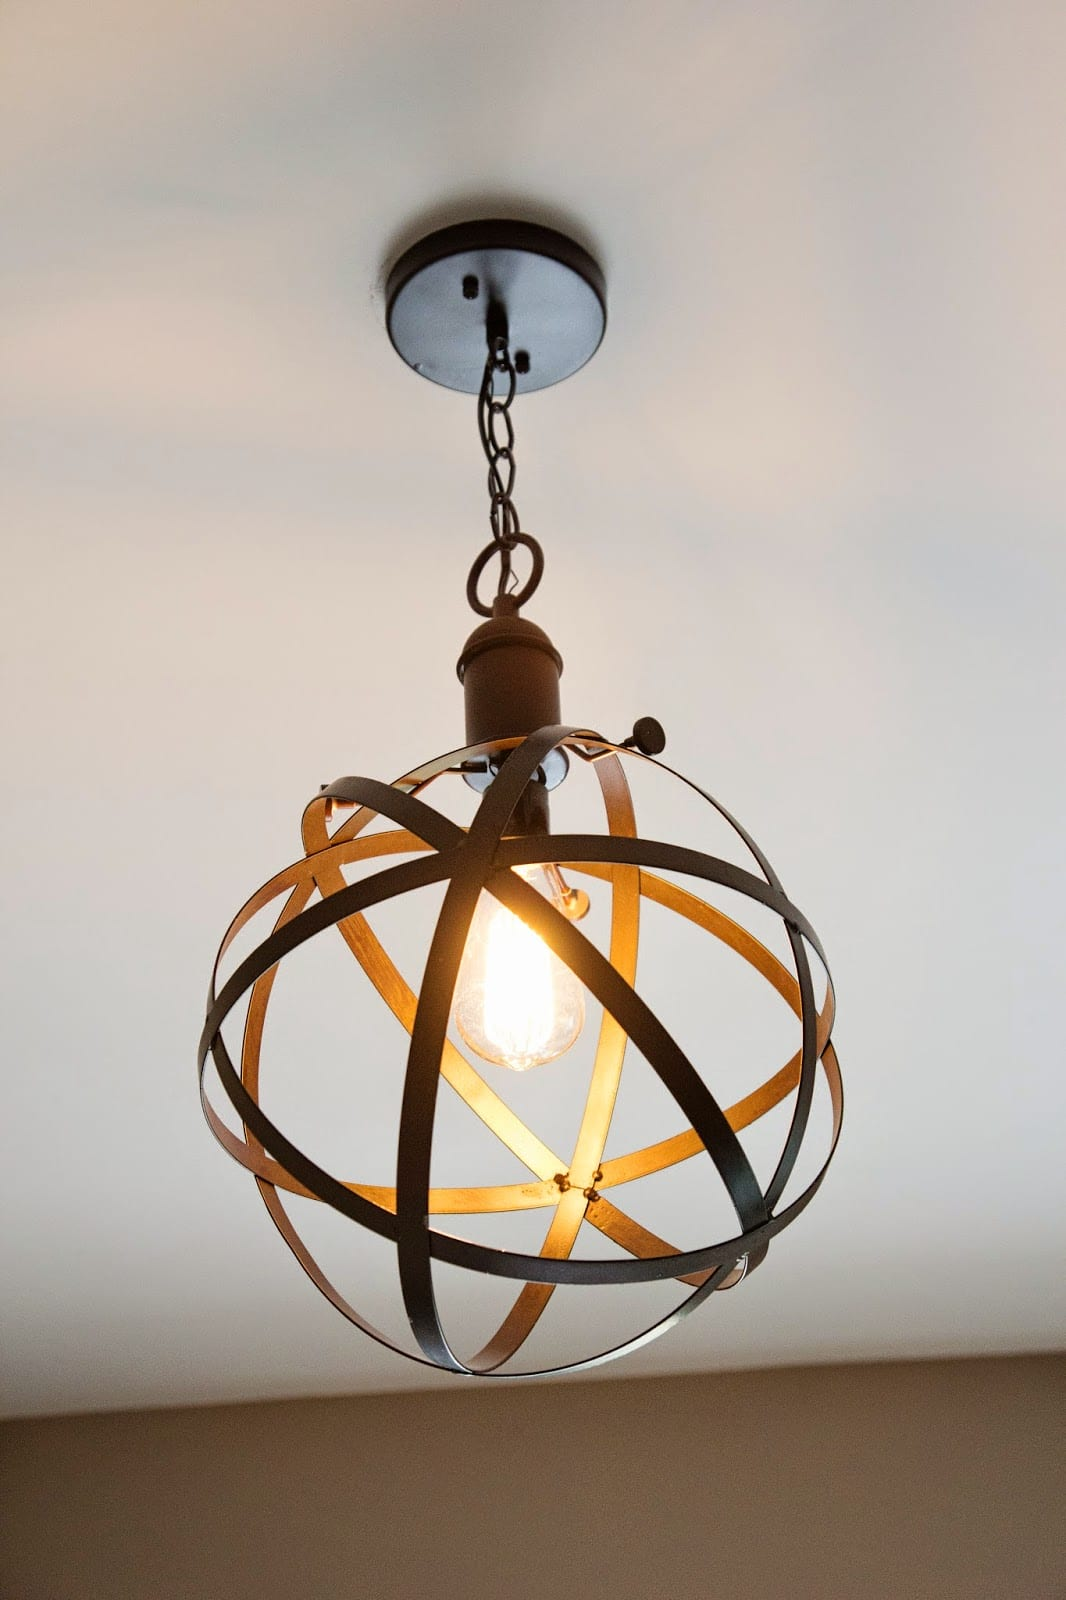 Diy industrial rustic pendant light bless 39 er house for Diy pendant light